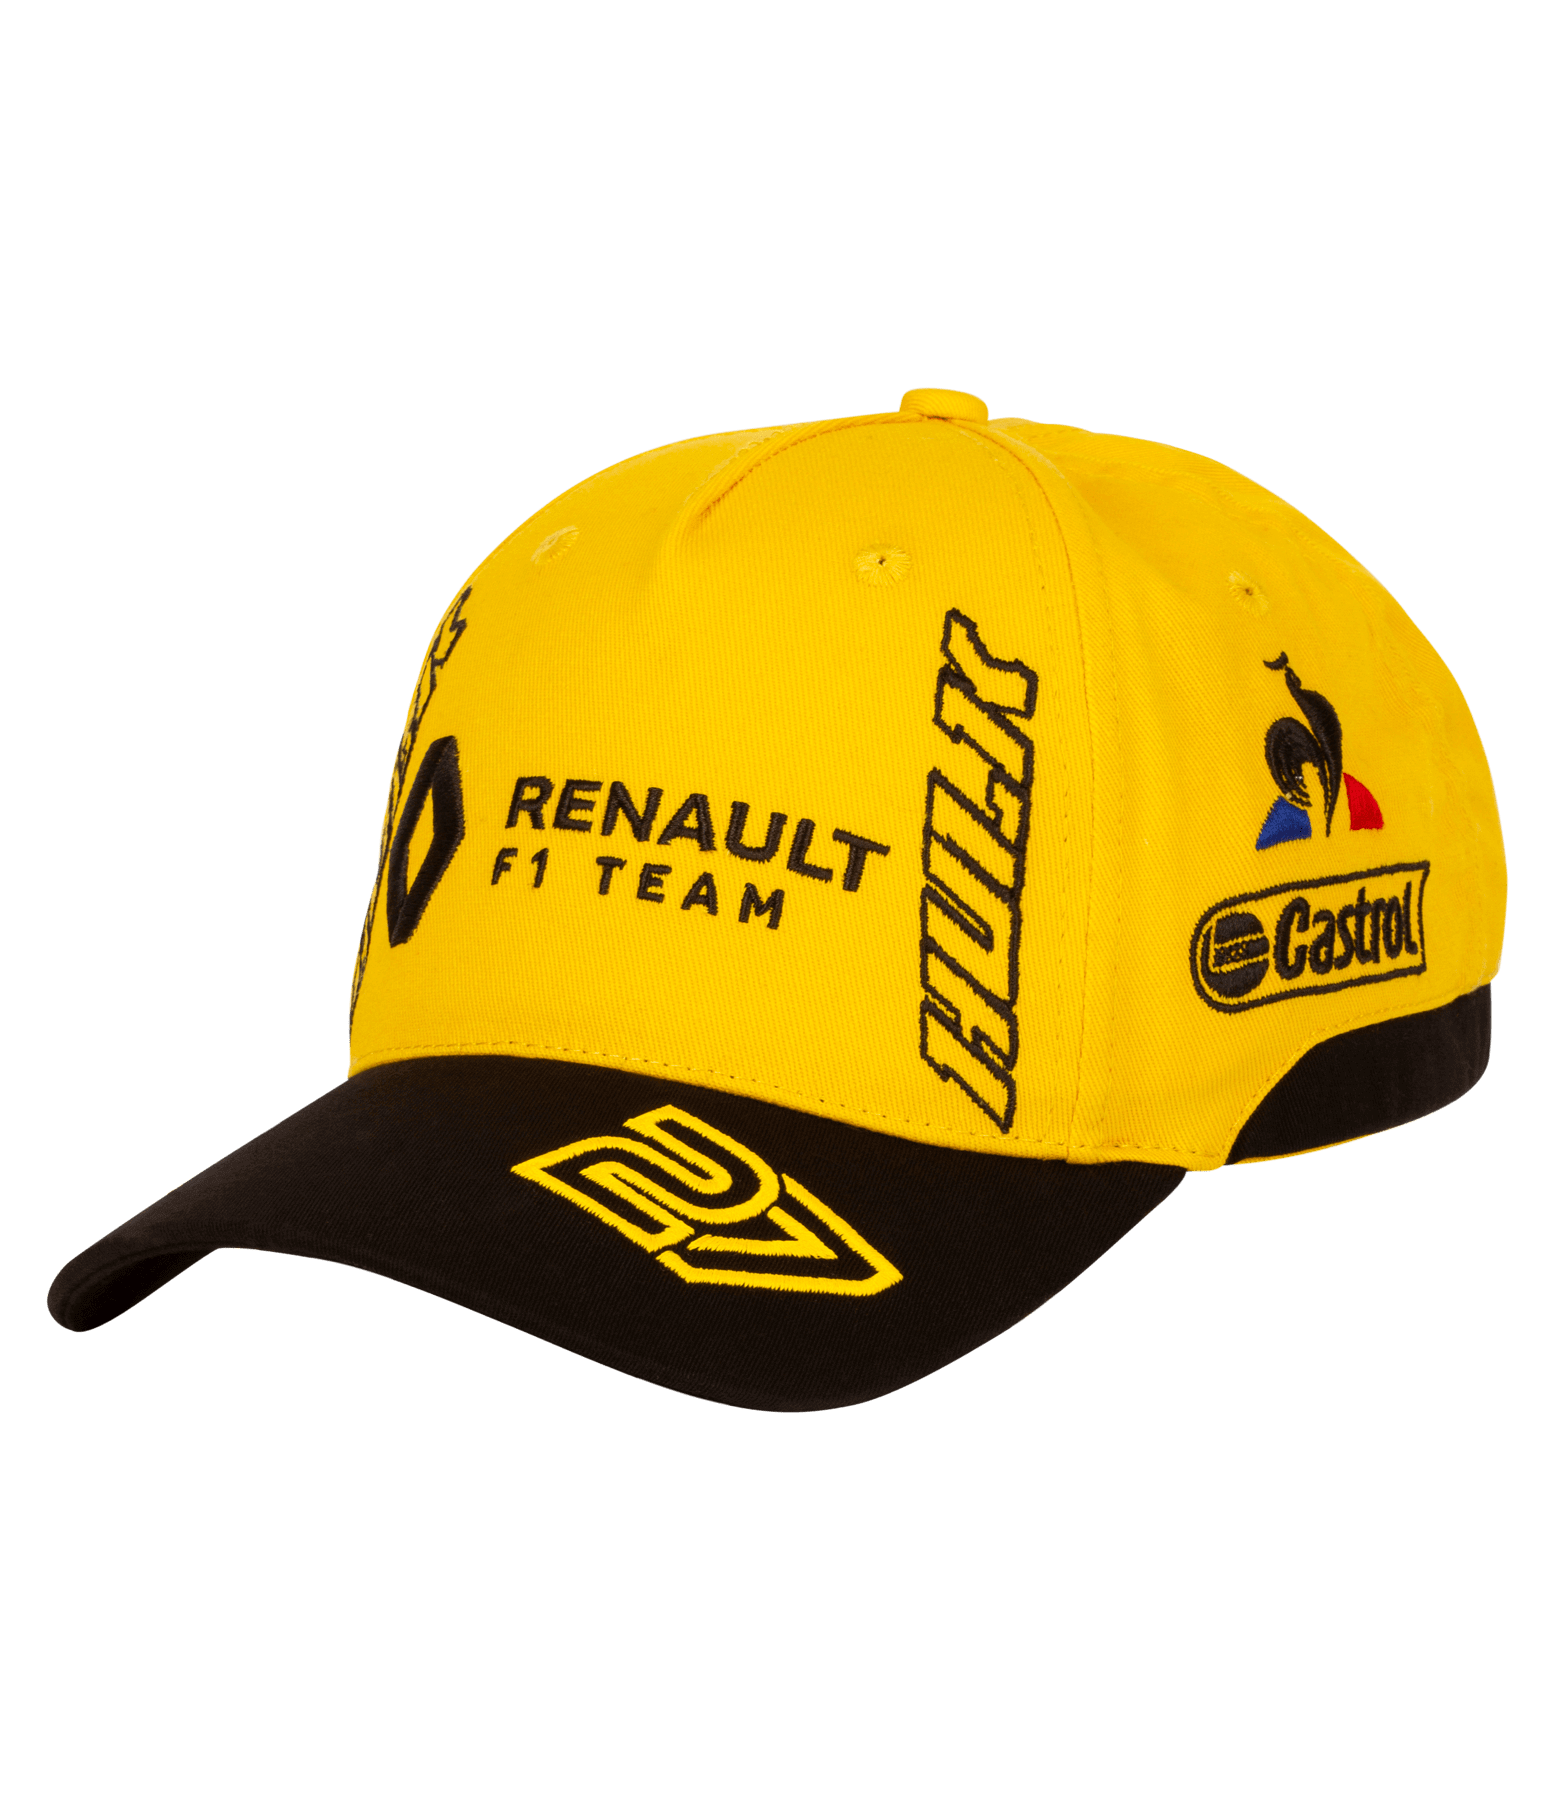 casquette renault f1 team 2019 h lkenberg site officiel. Black Bedroom Furniture Sets. Home Design Ideas